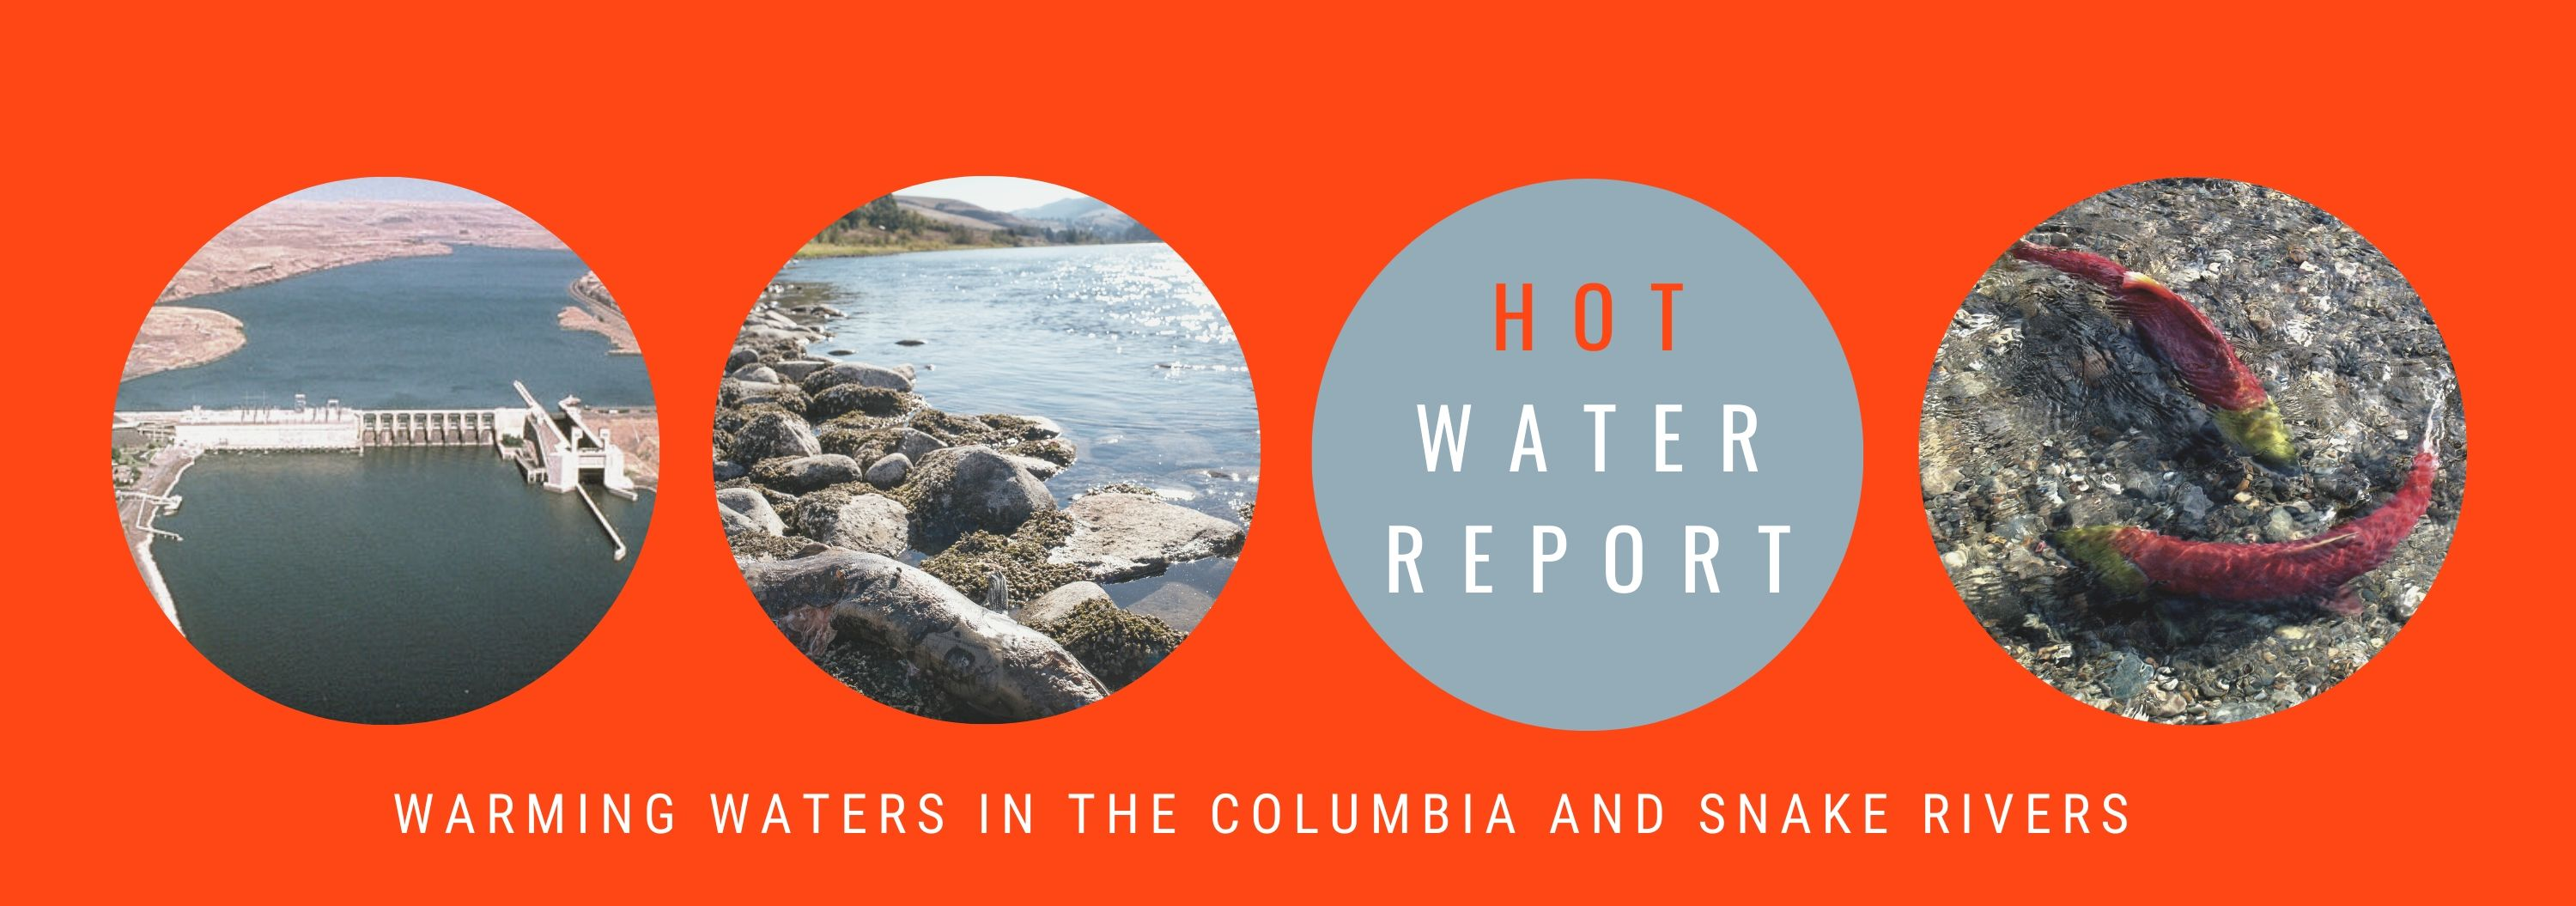 Hot Water Report 1